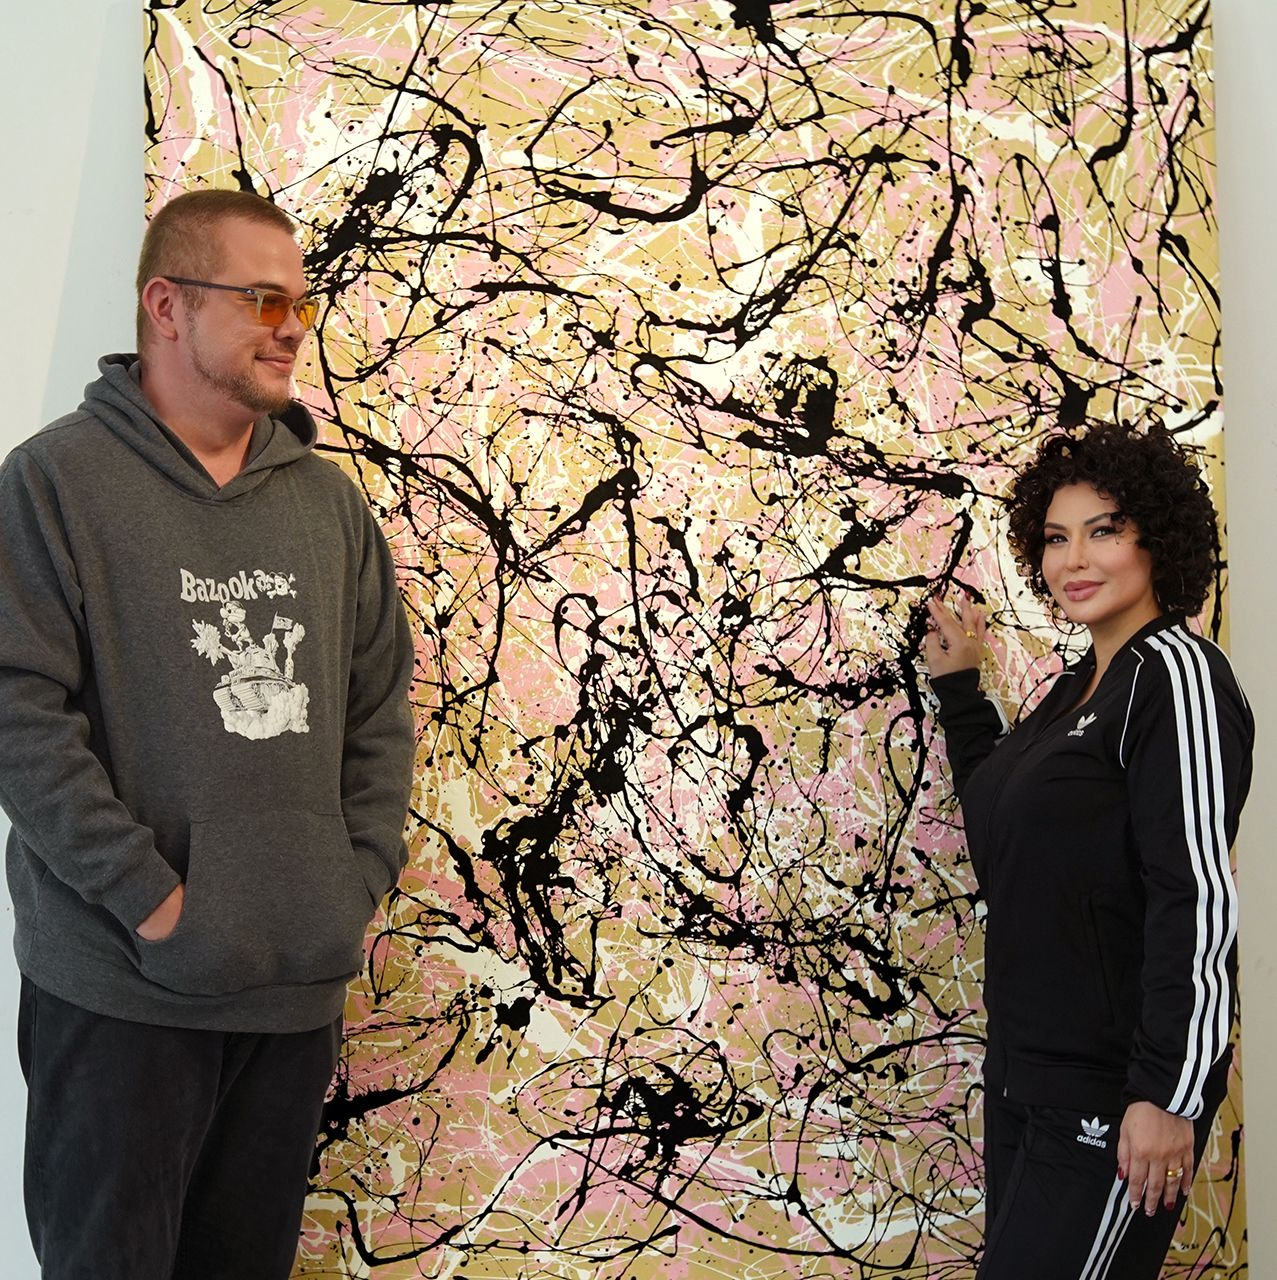 Brian Uhing And S-Ann Ch'i: Explore The Colourful World Of This Visual Artist Couple